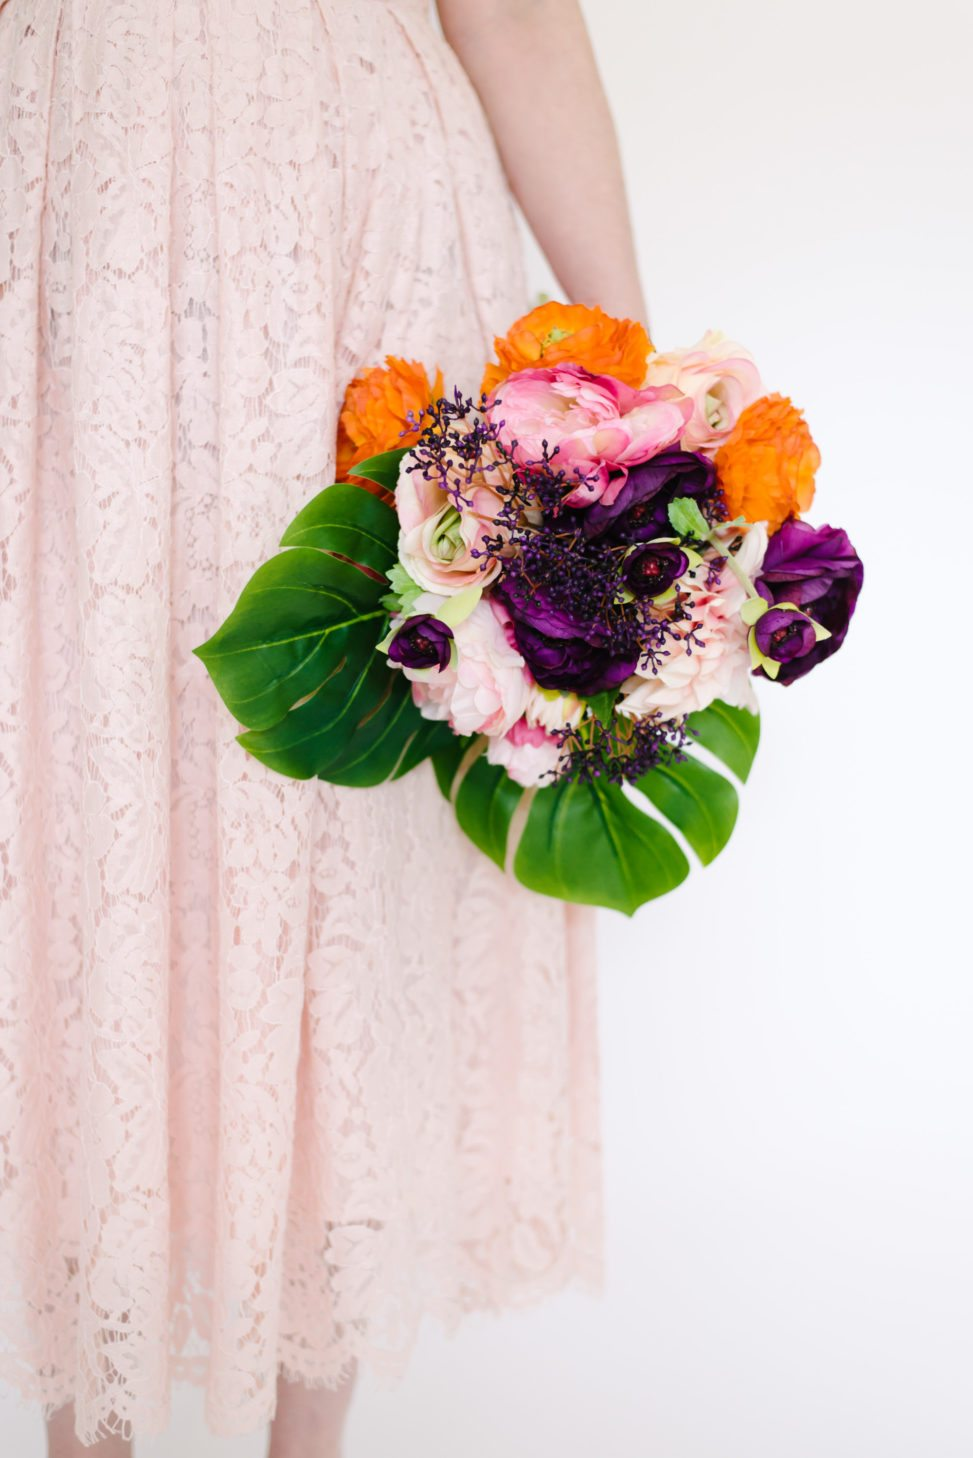 Fake floral bouquet that looks real with silk tropical leaves and silk multicolored flowers